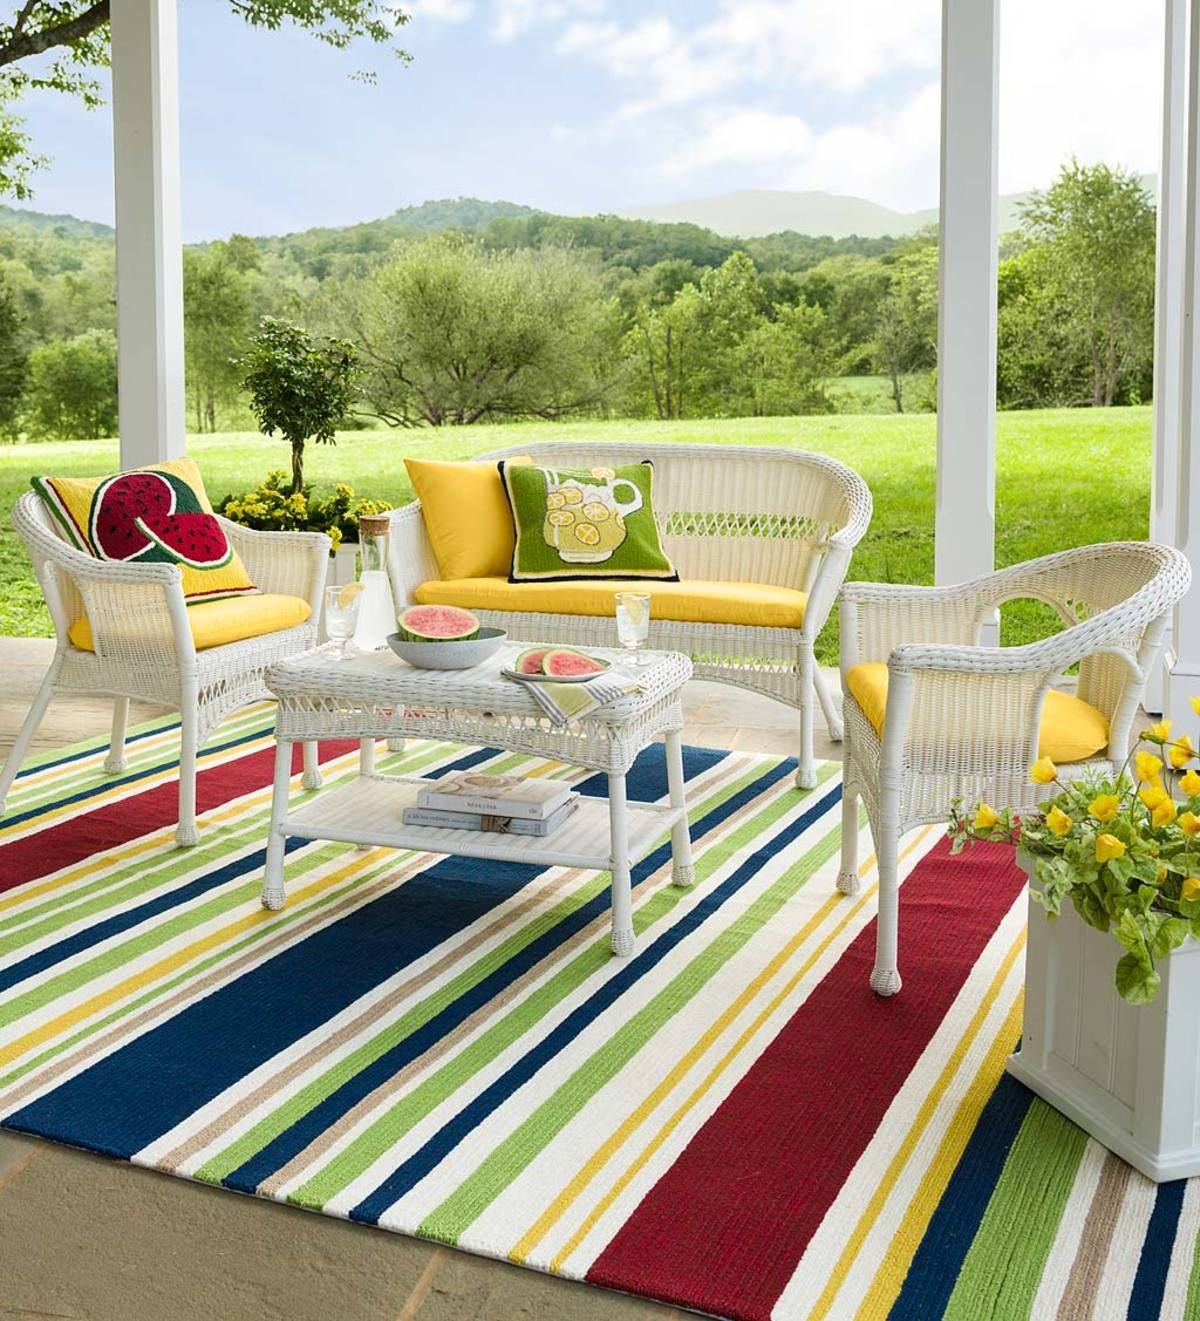 For Porch Deck Or Patio Our Easy Care Wicker Furniture